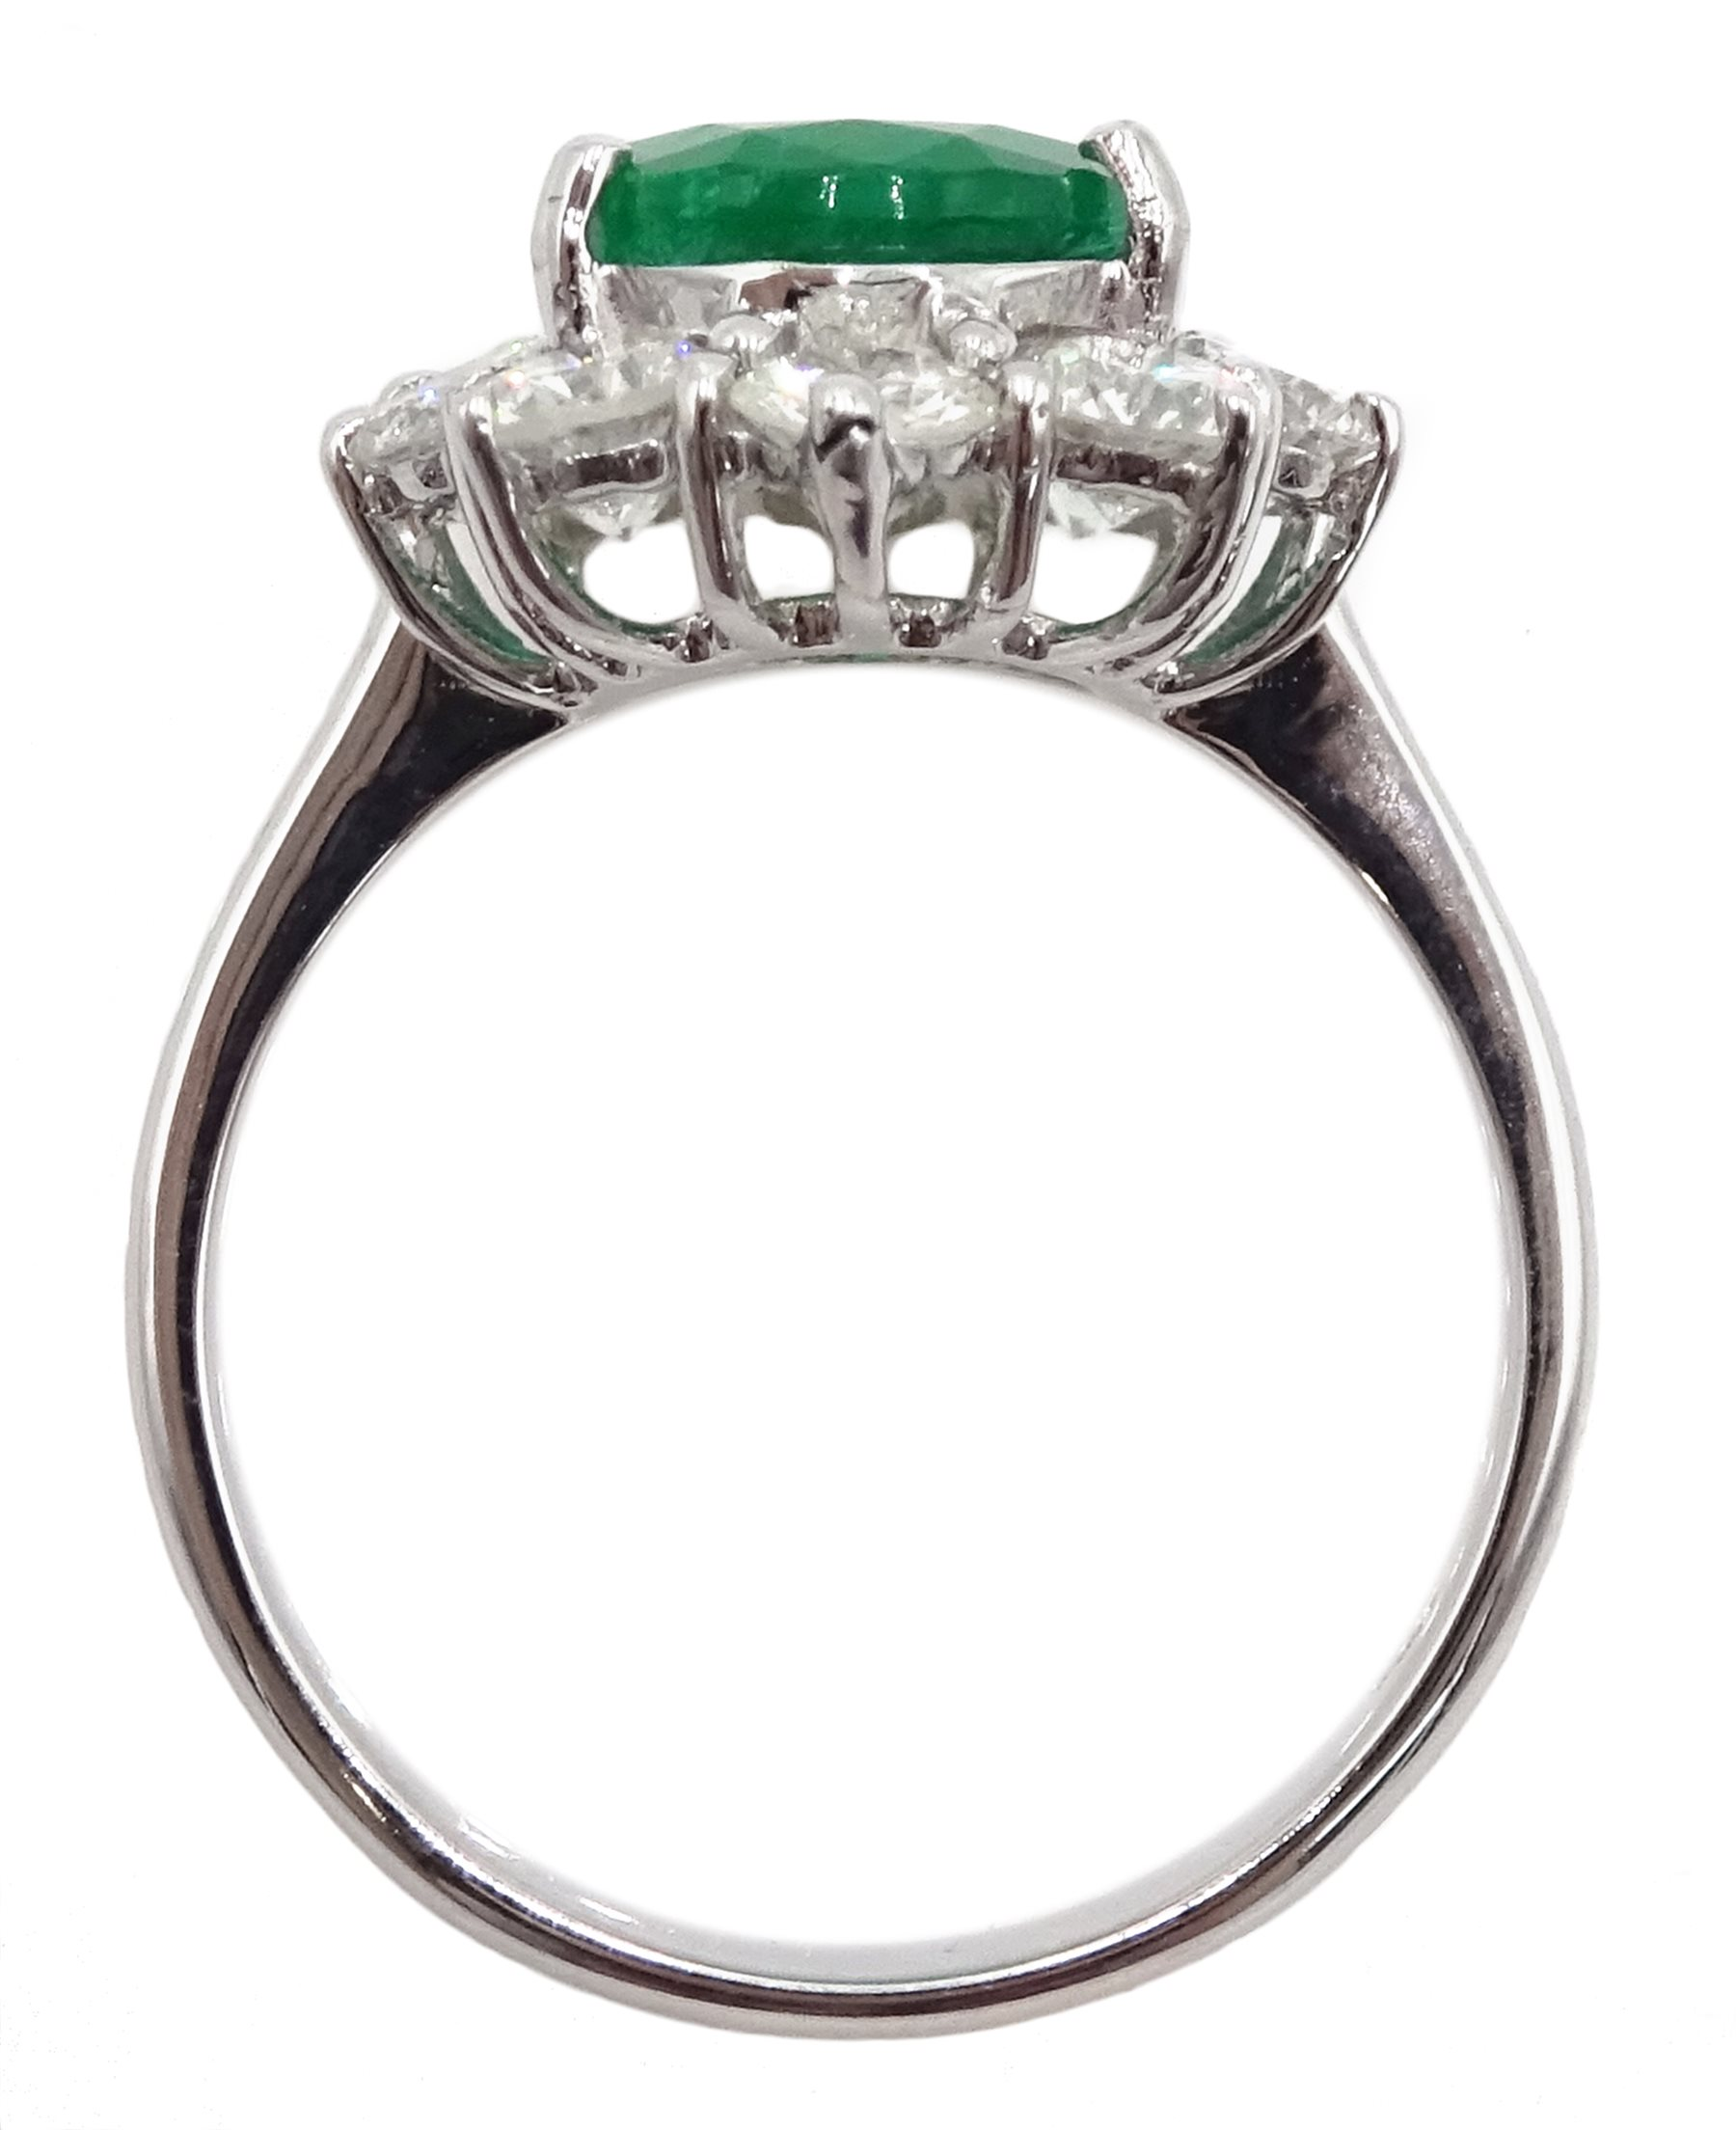 White gold oval emerald and round brilliant cut diamond ring - Image 5 of 5